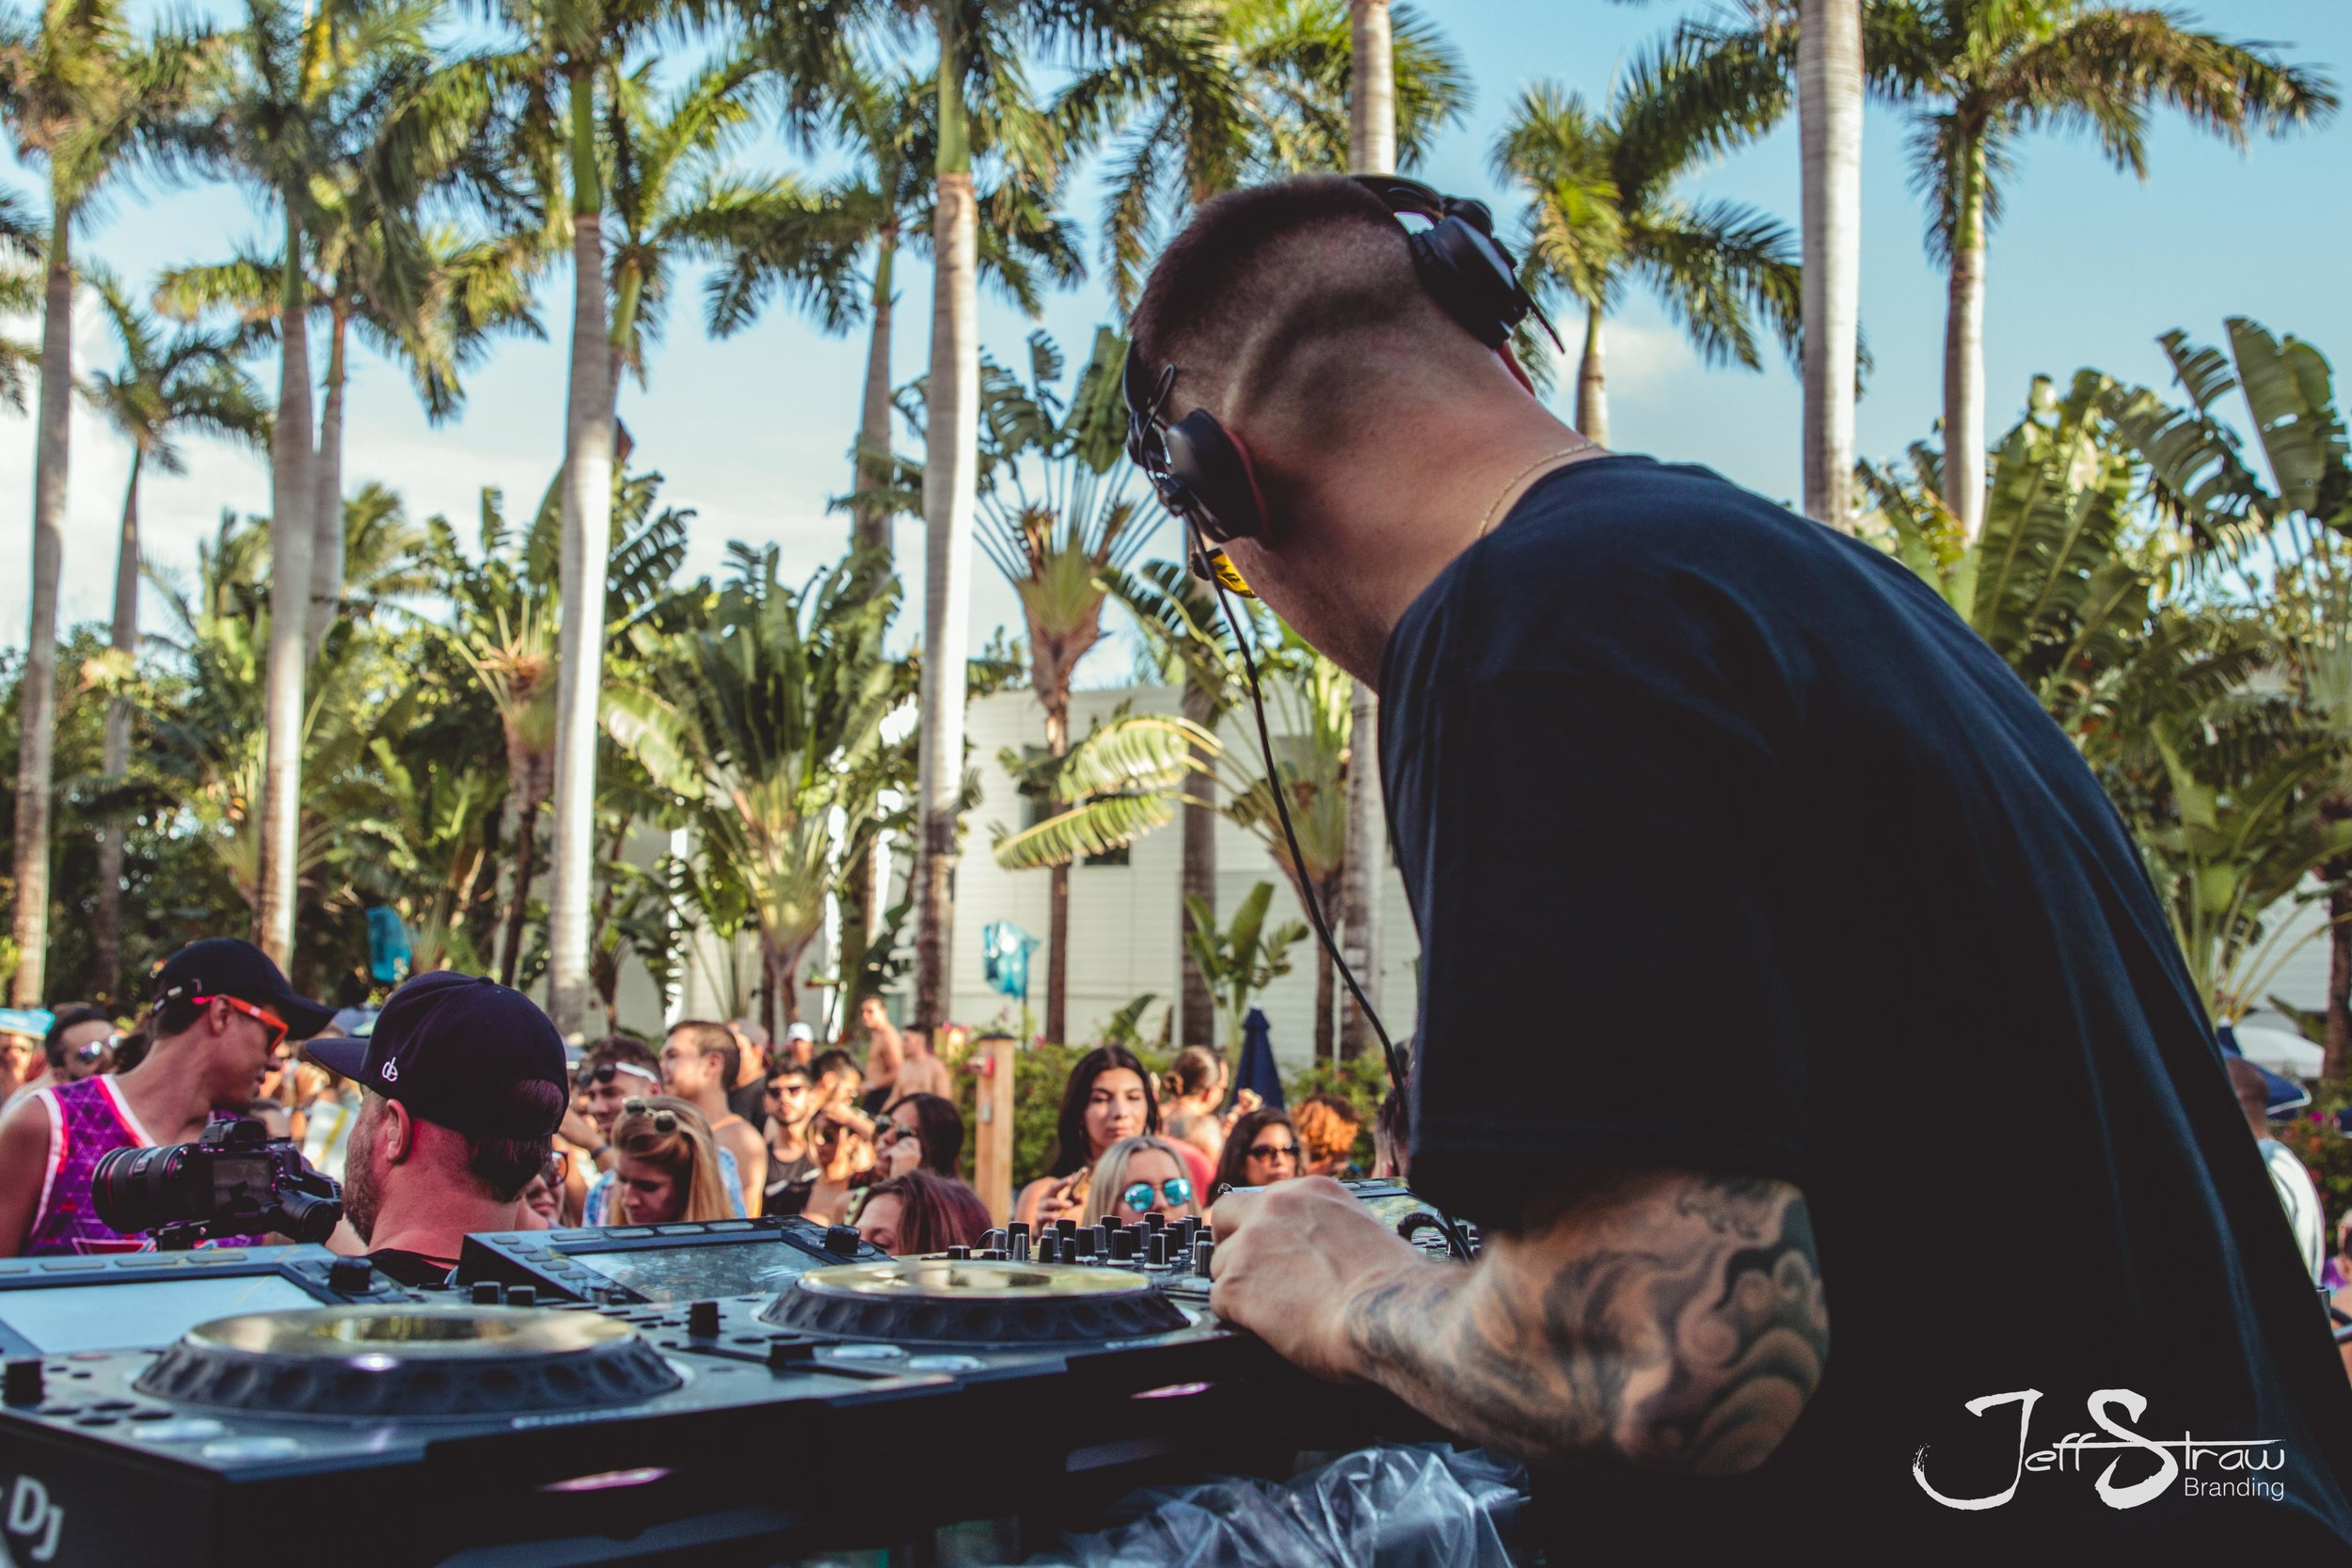 Insomniac Records Pool Party - Gorgon City, Sonny Fodera, Dom Dolla, Redlight on 3/29/19 at Shore Club, Miami Music Week